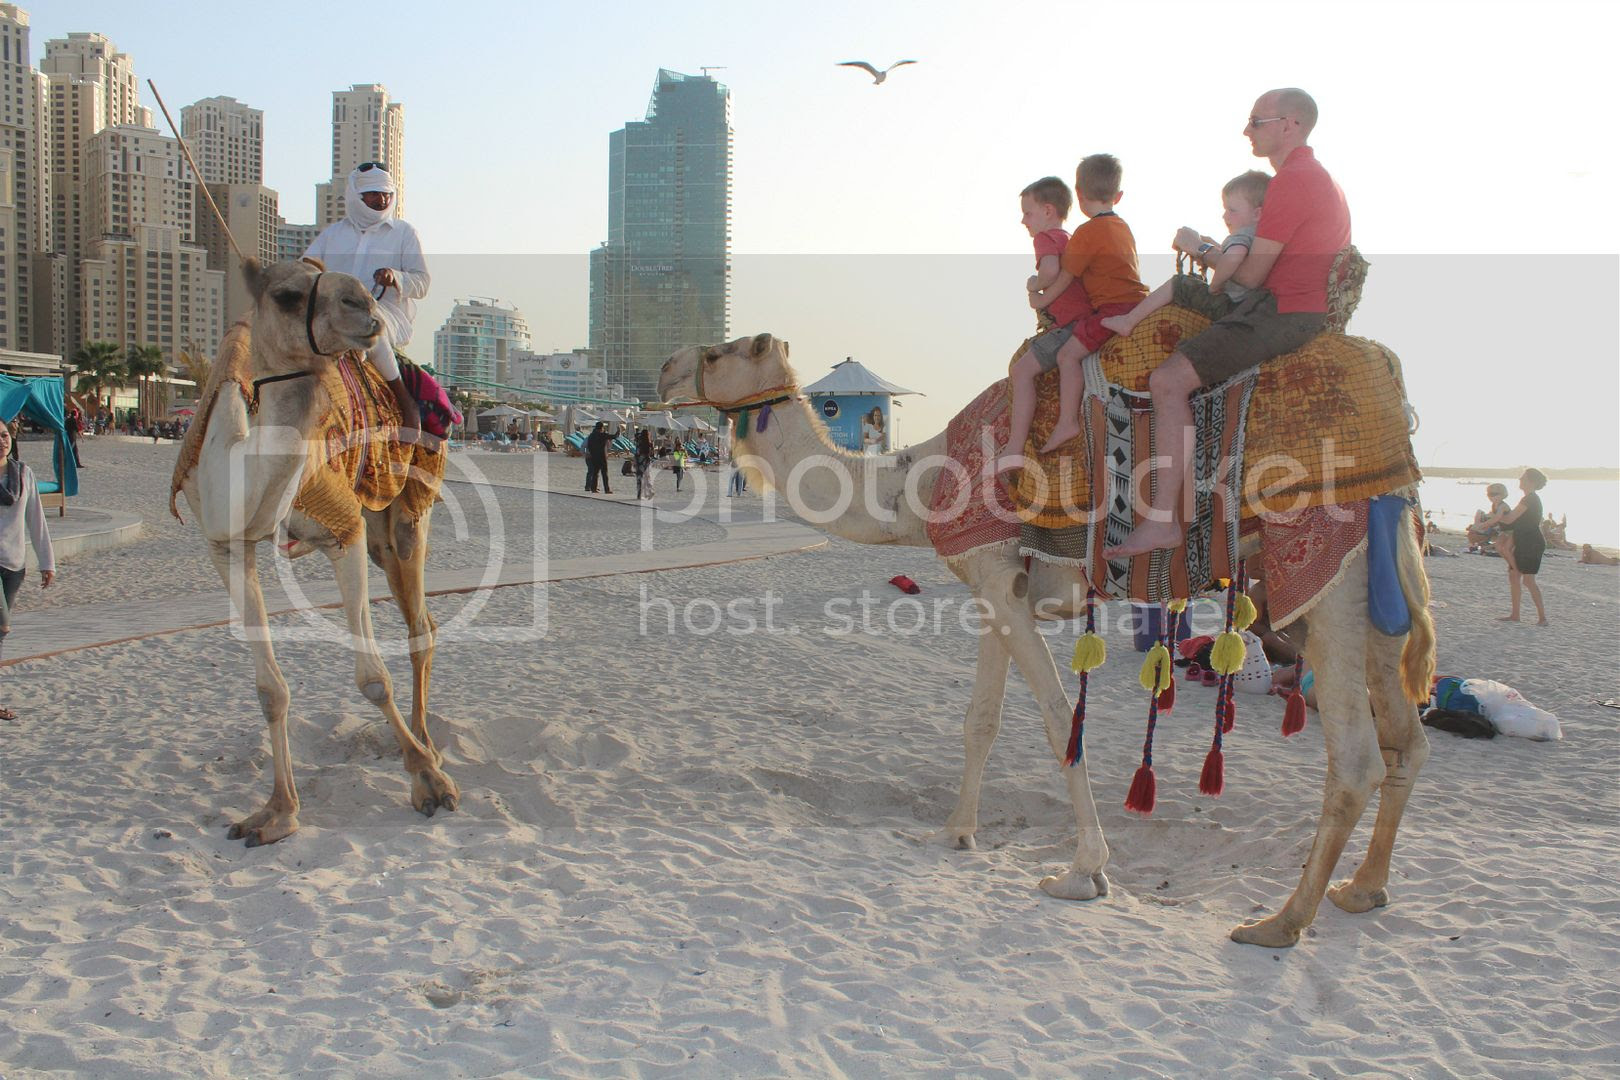 riding a camel in dubai